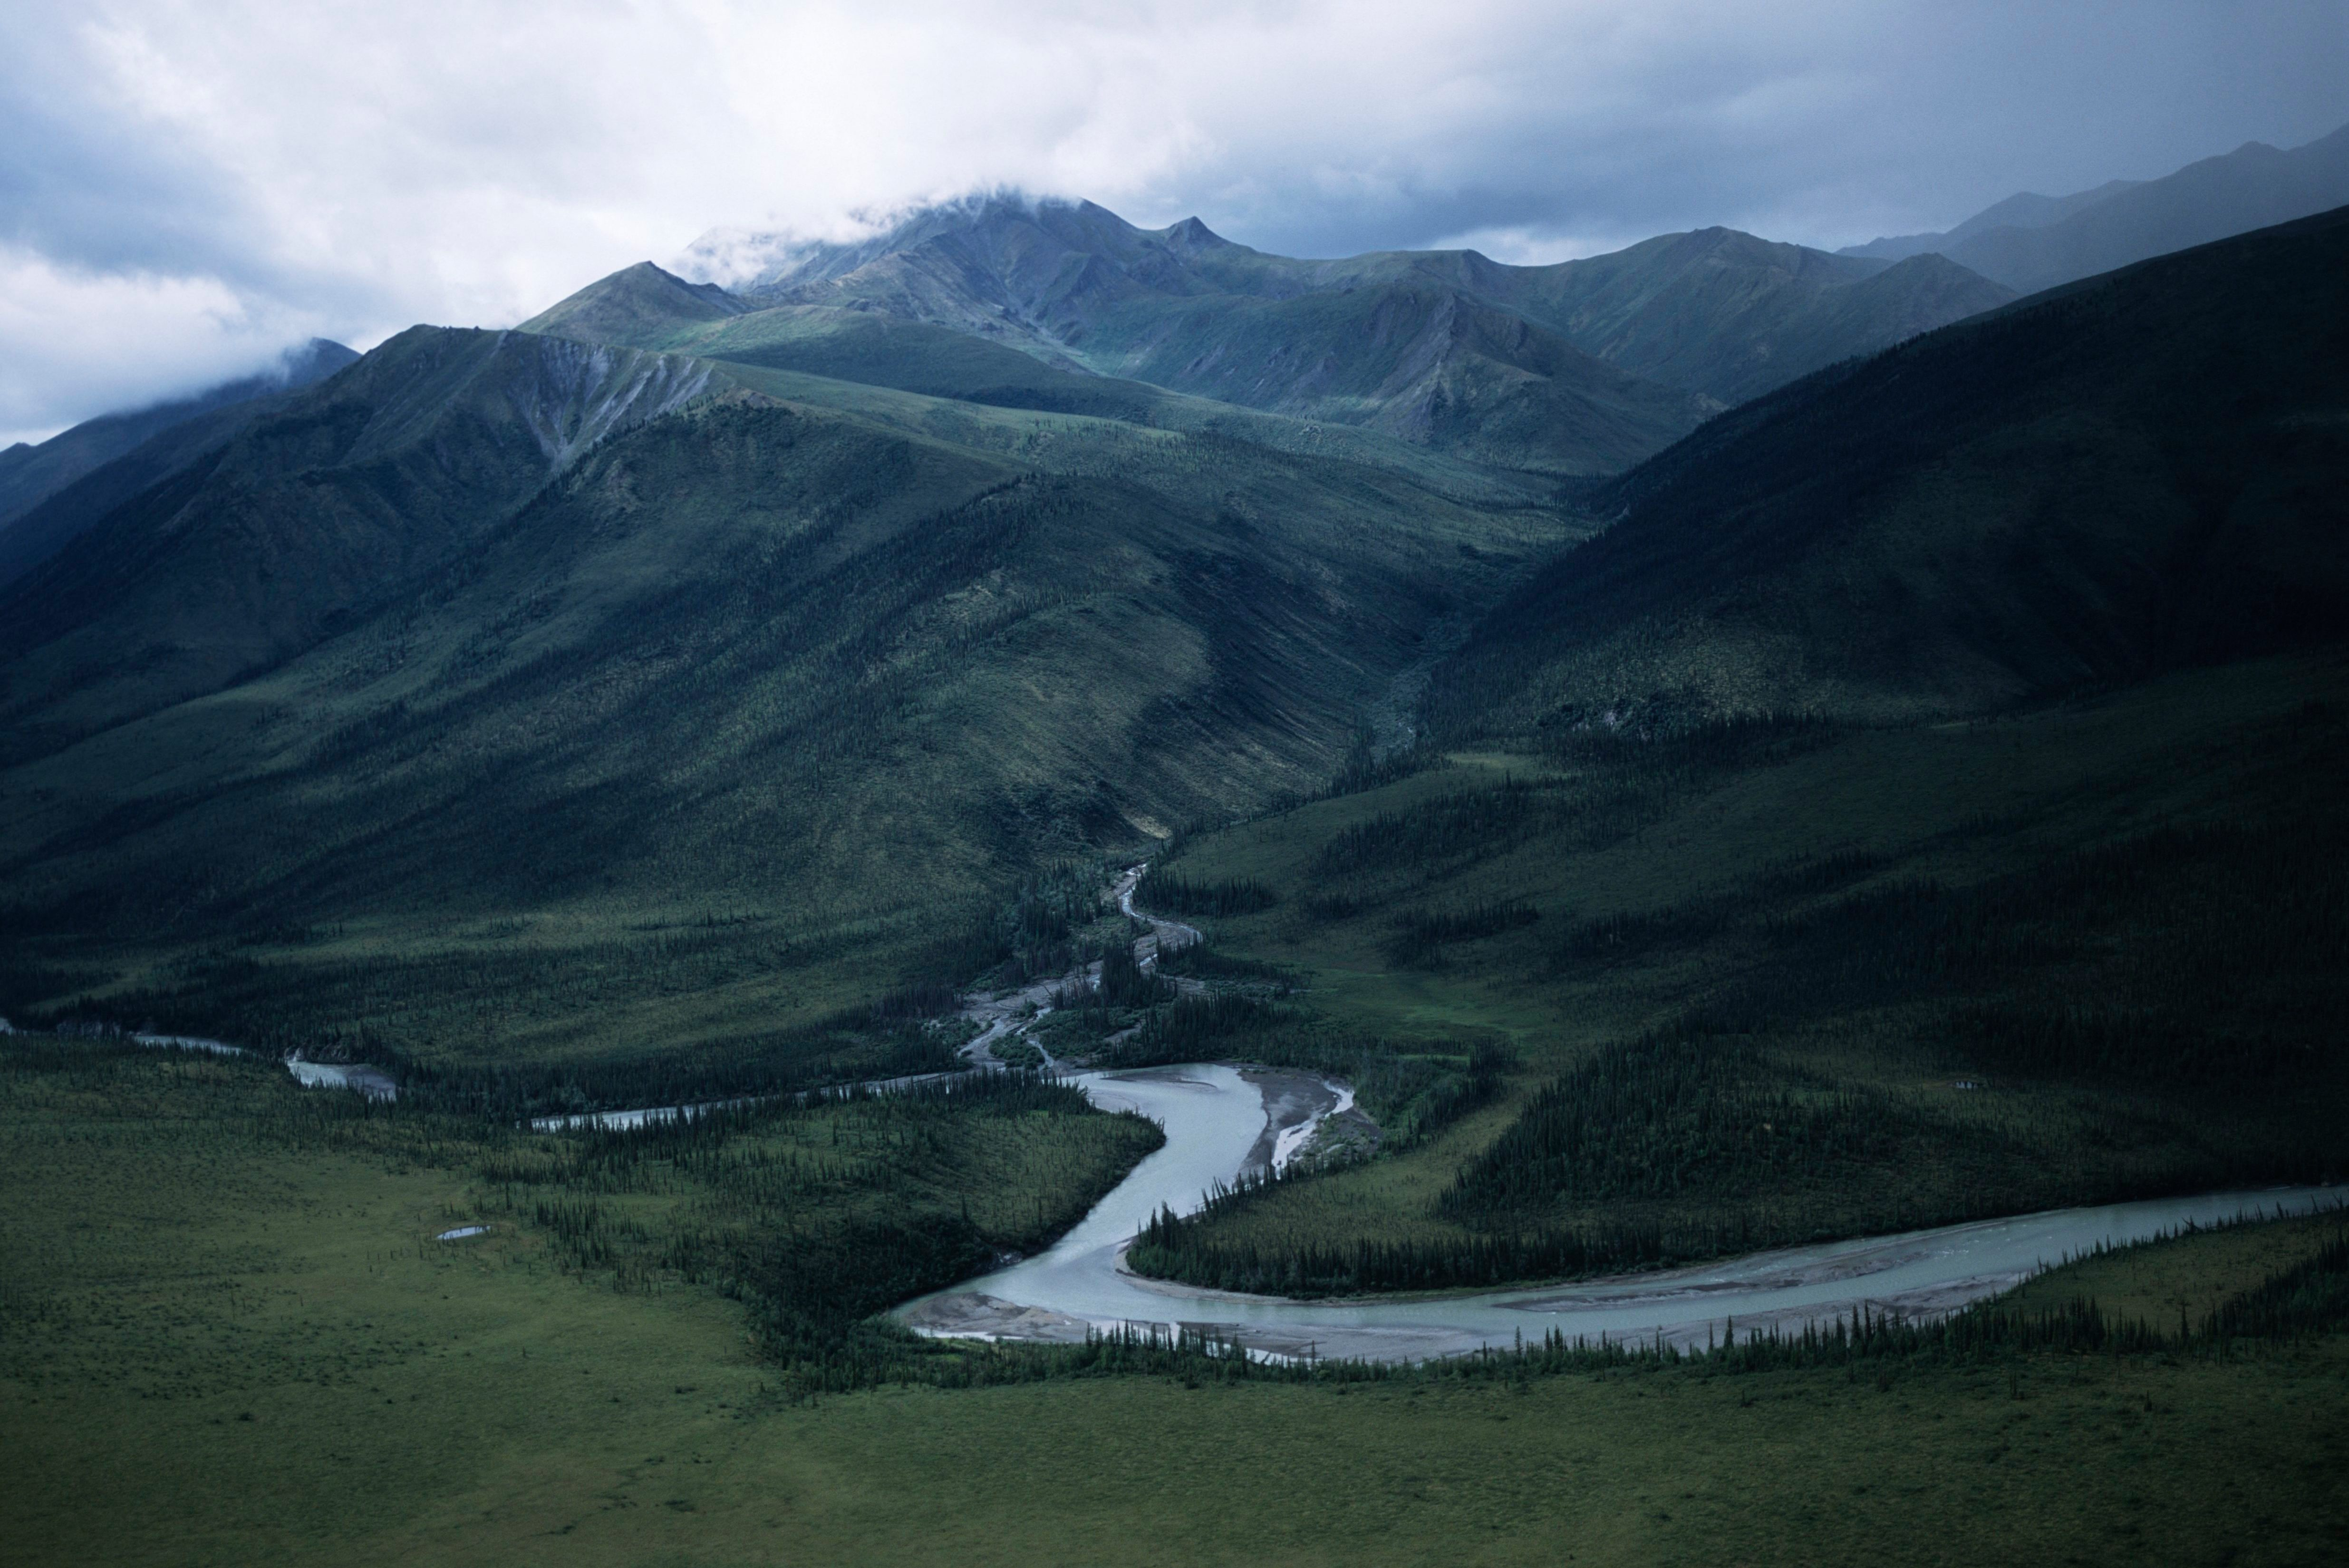 USA, Alaska, Gates of the Arctic National Park, river valley with mountains in background